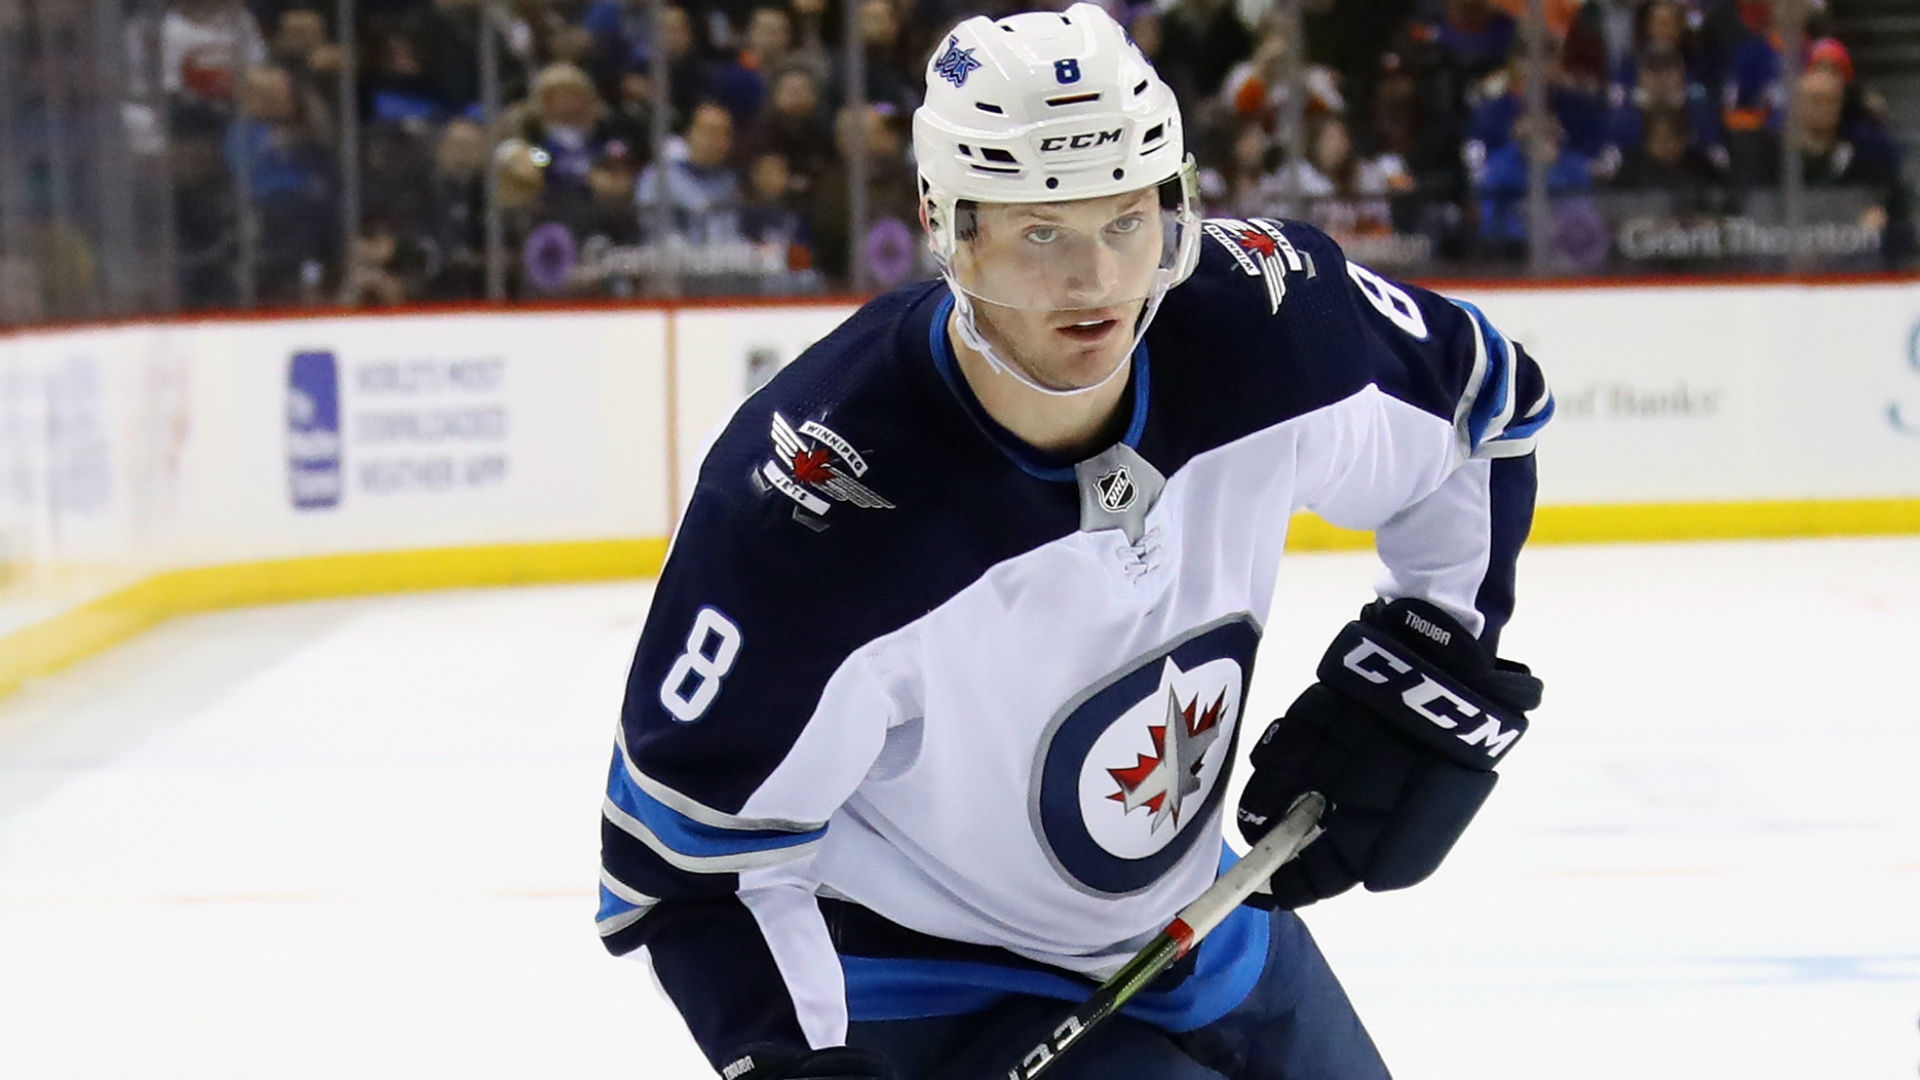 Ankle injury to sideline Jets D Jacob Trouba